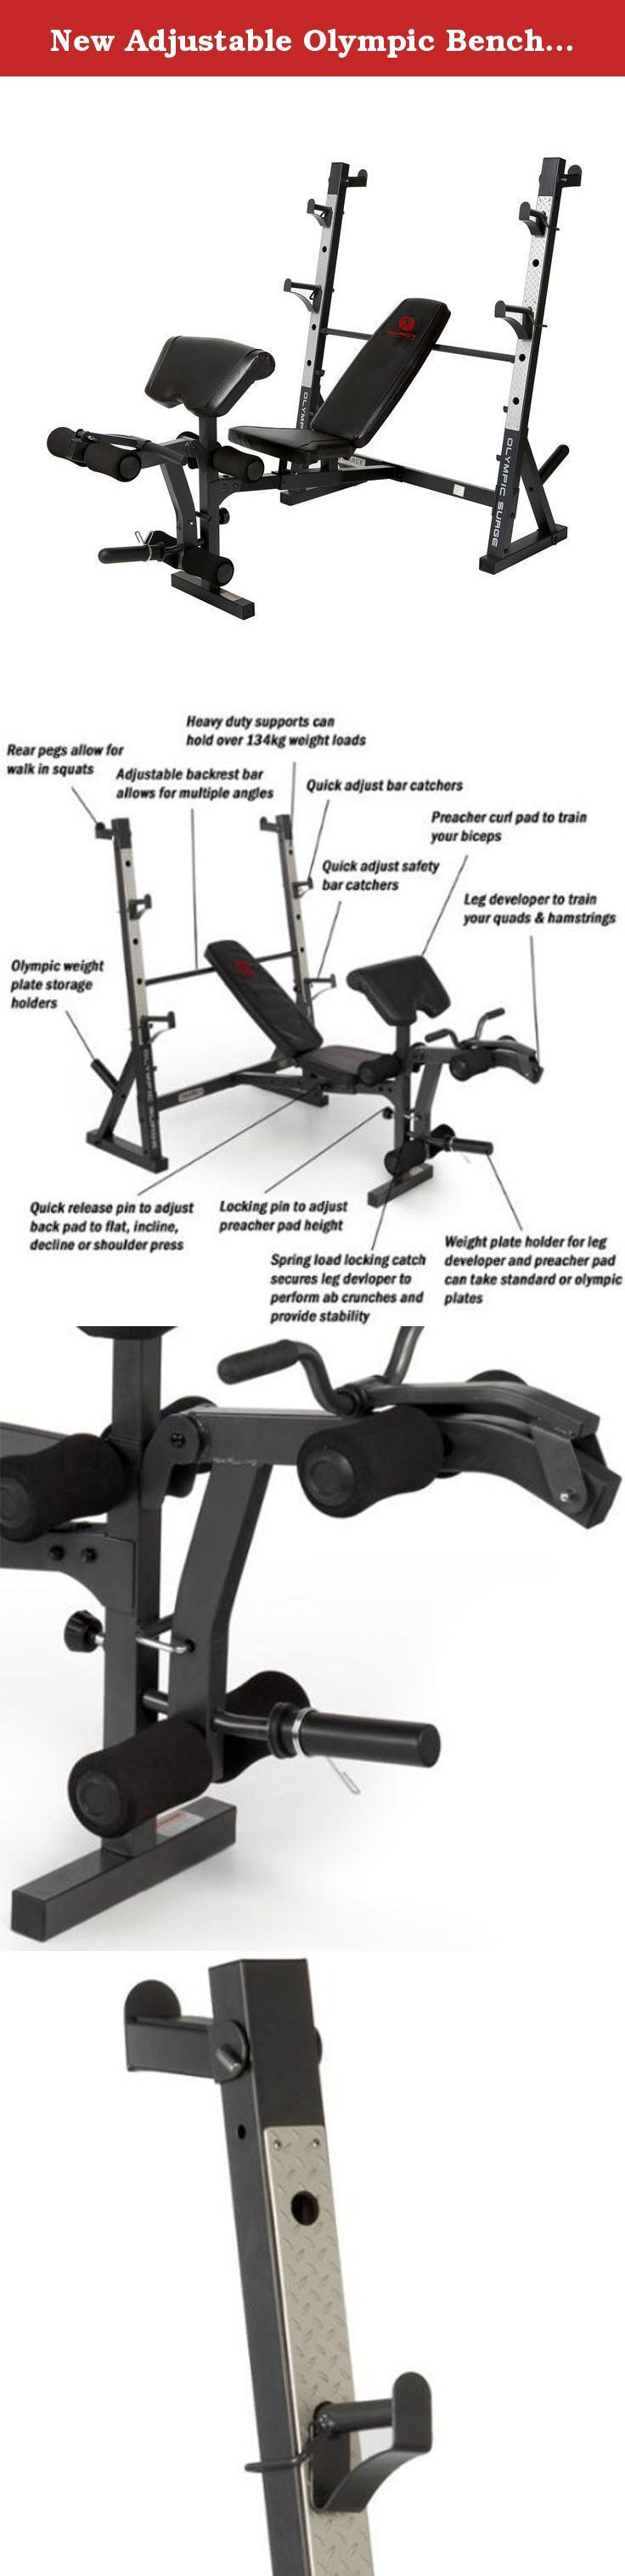 olympic workout machine